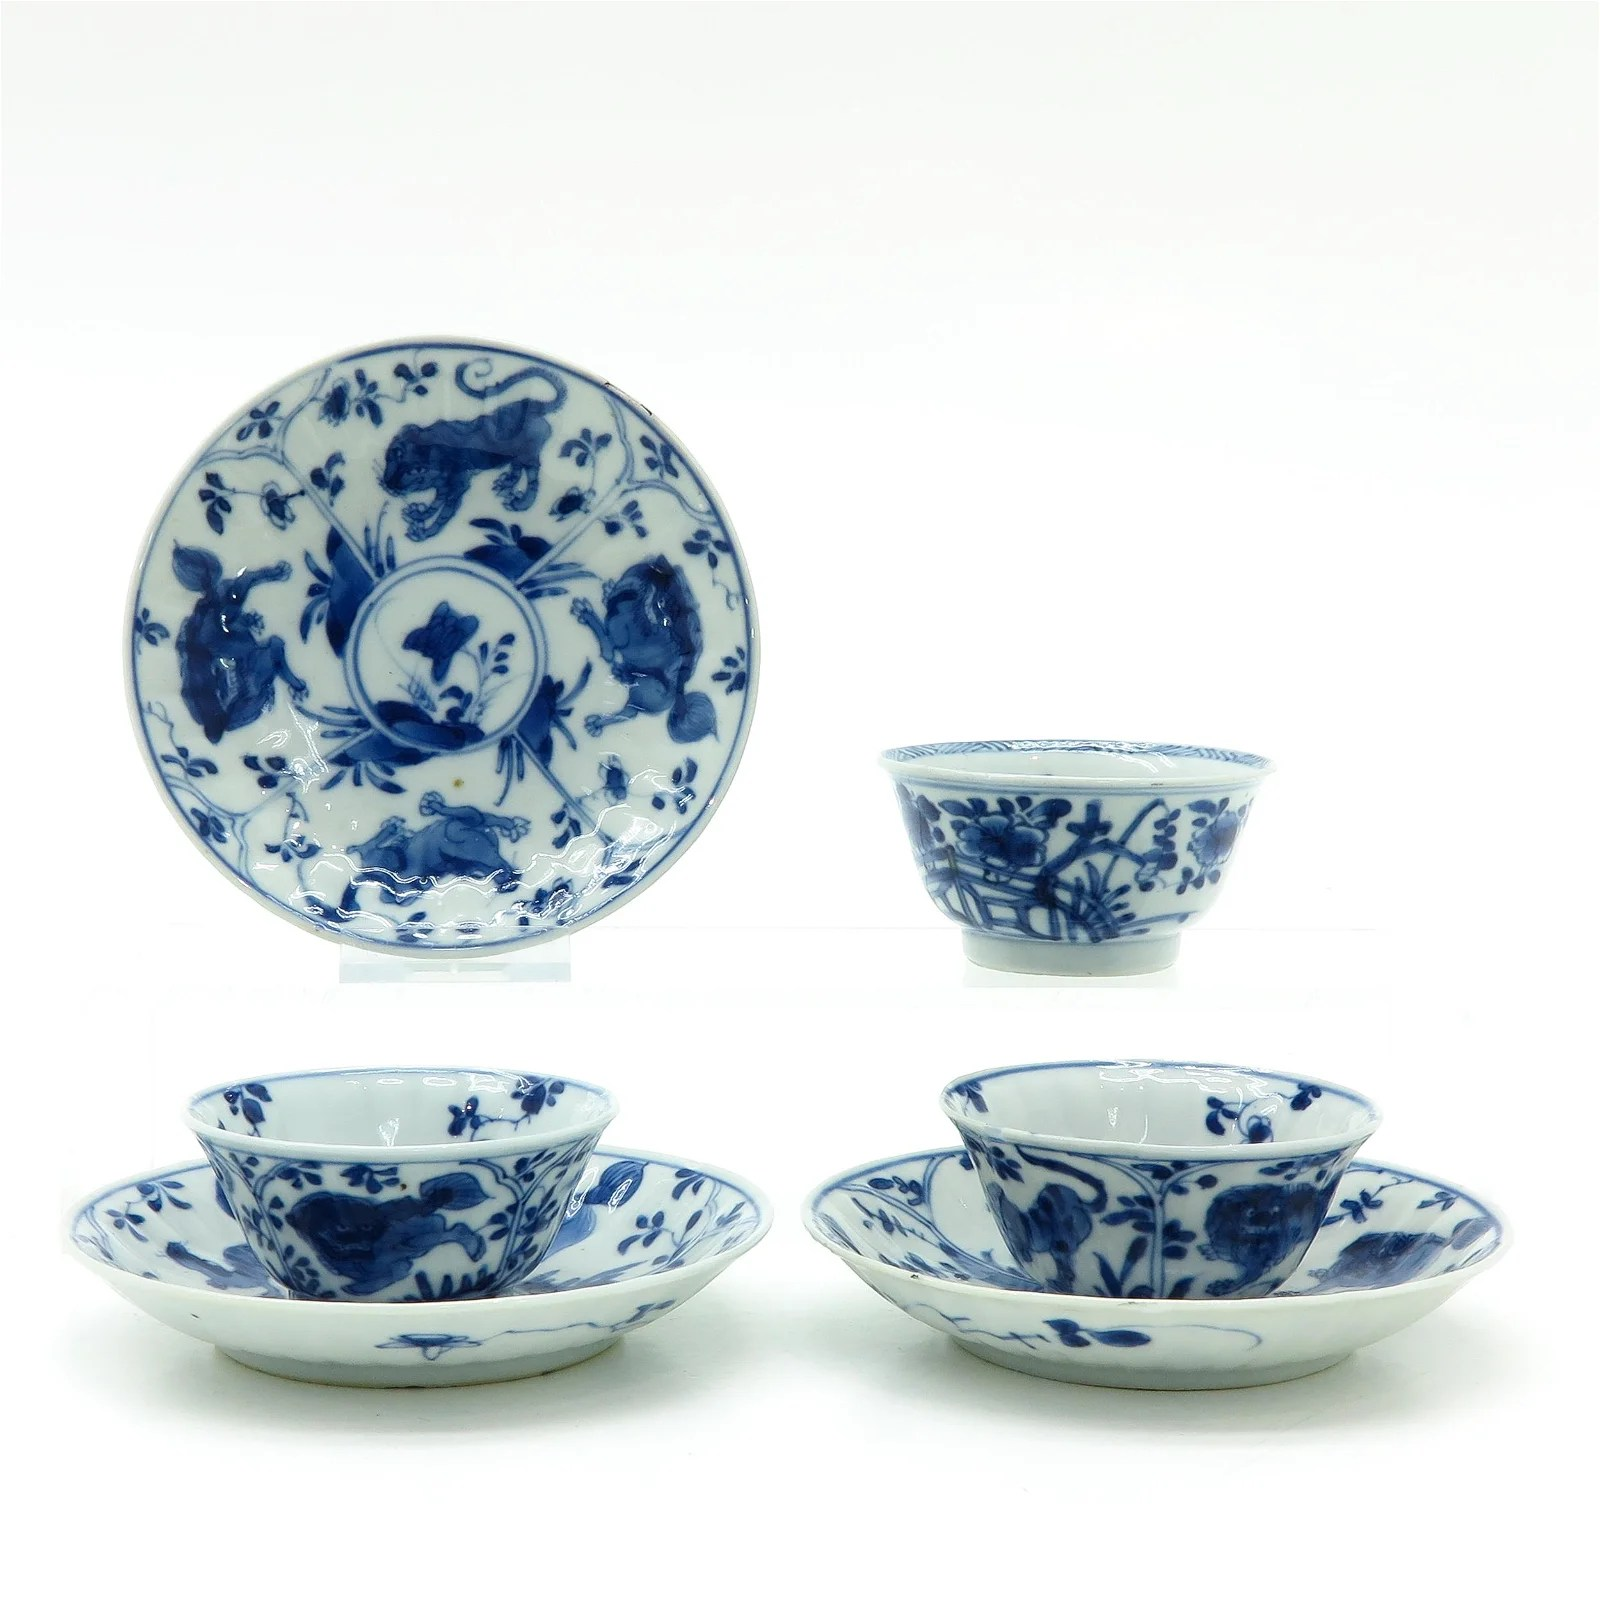 Three Chinese Cups and Saucers